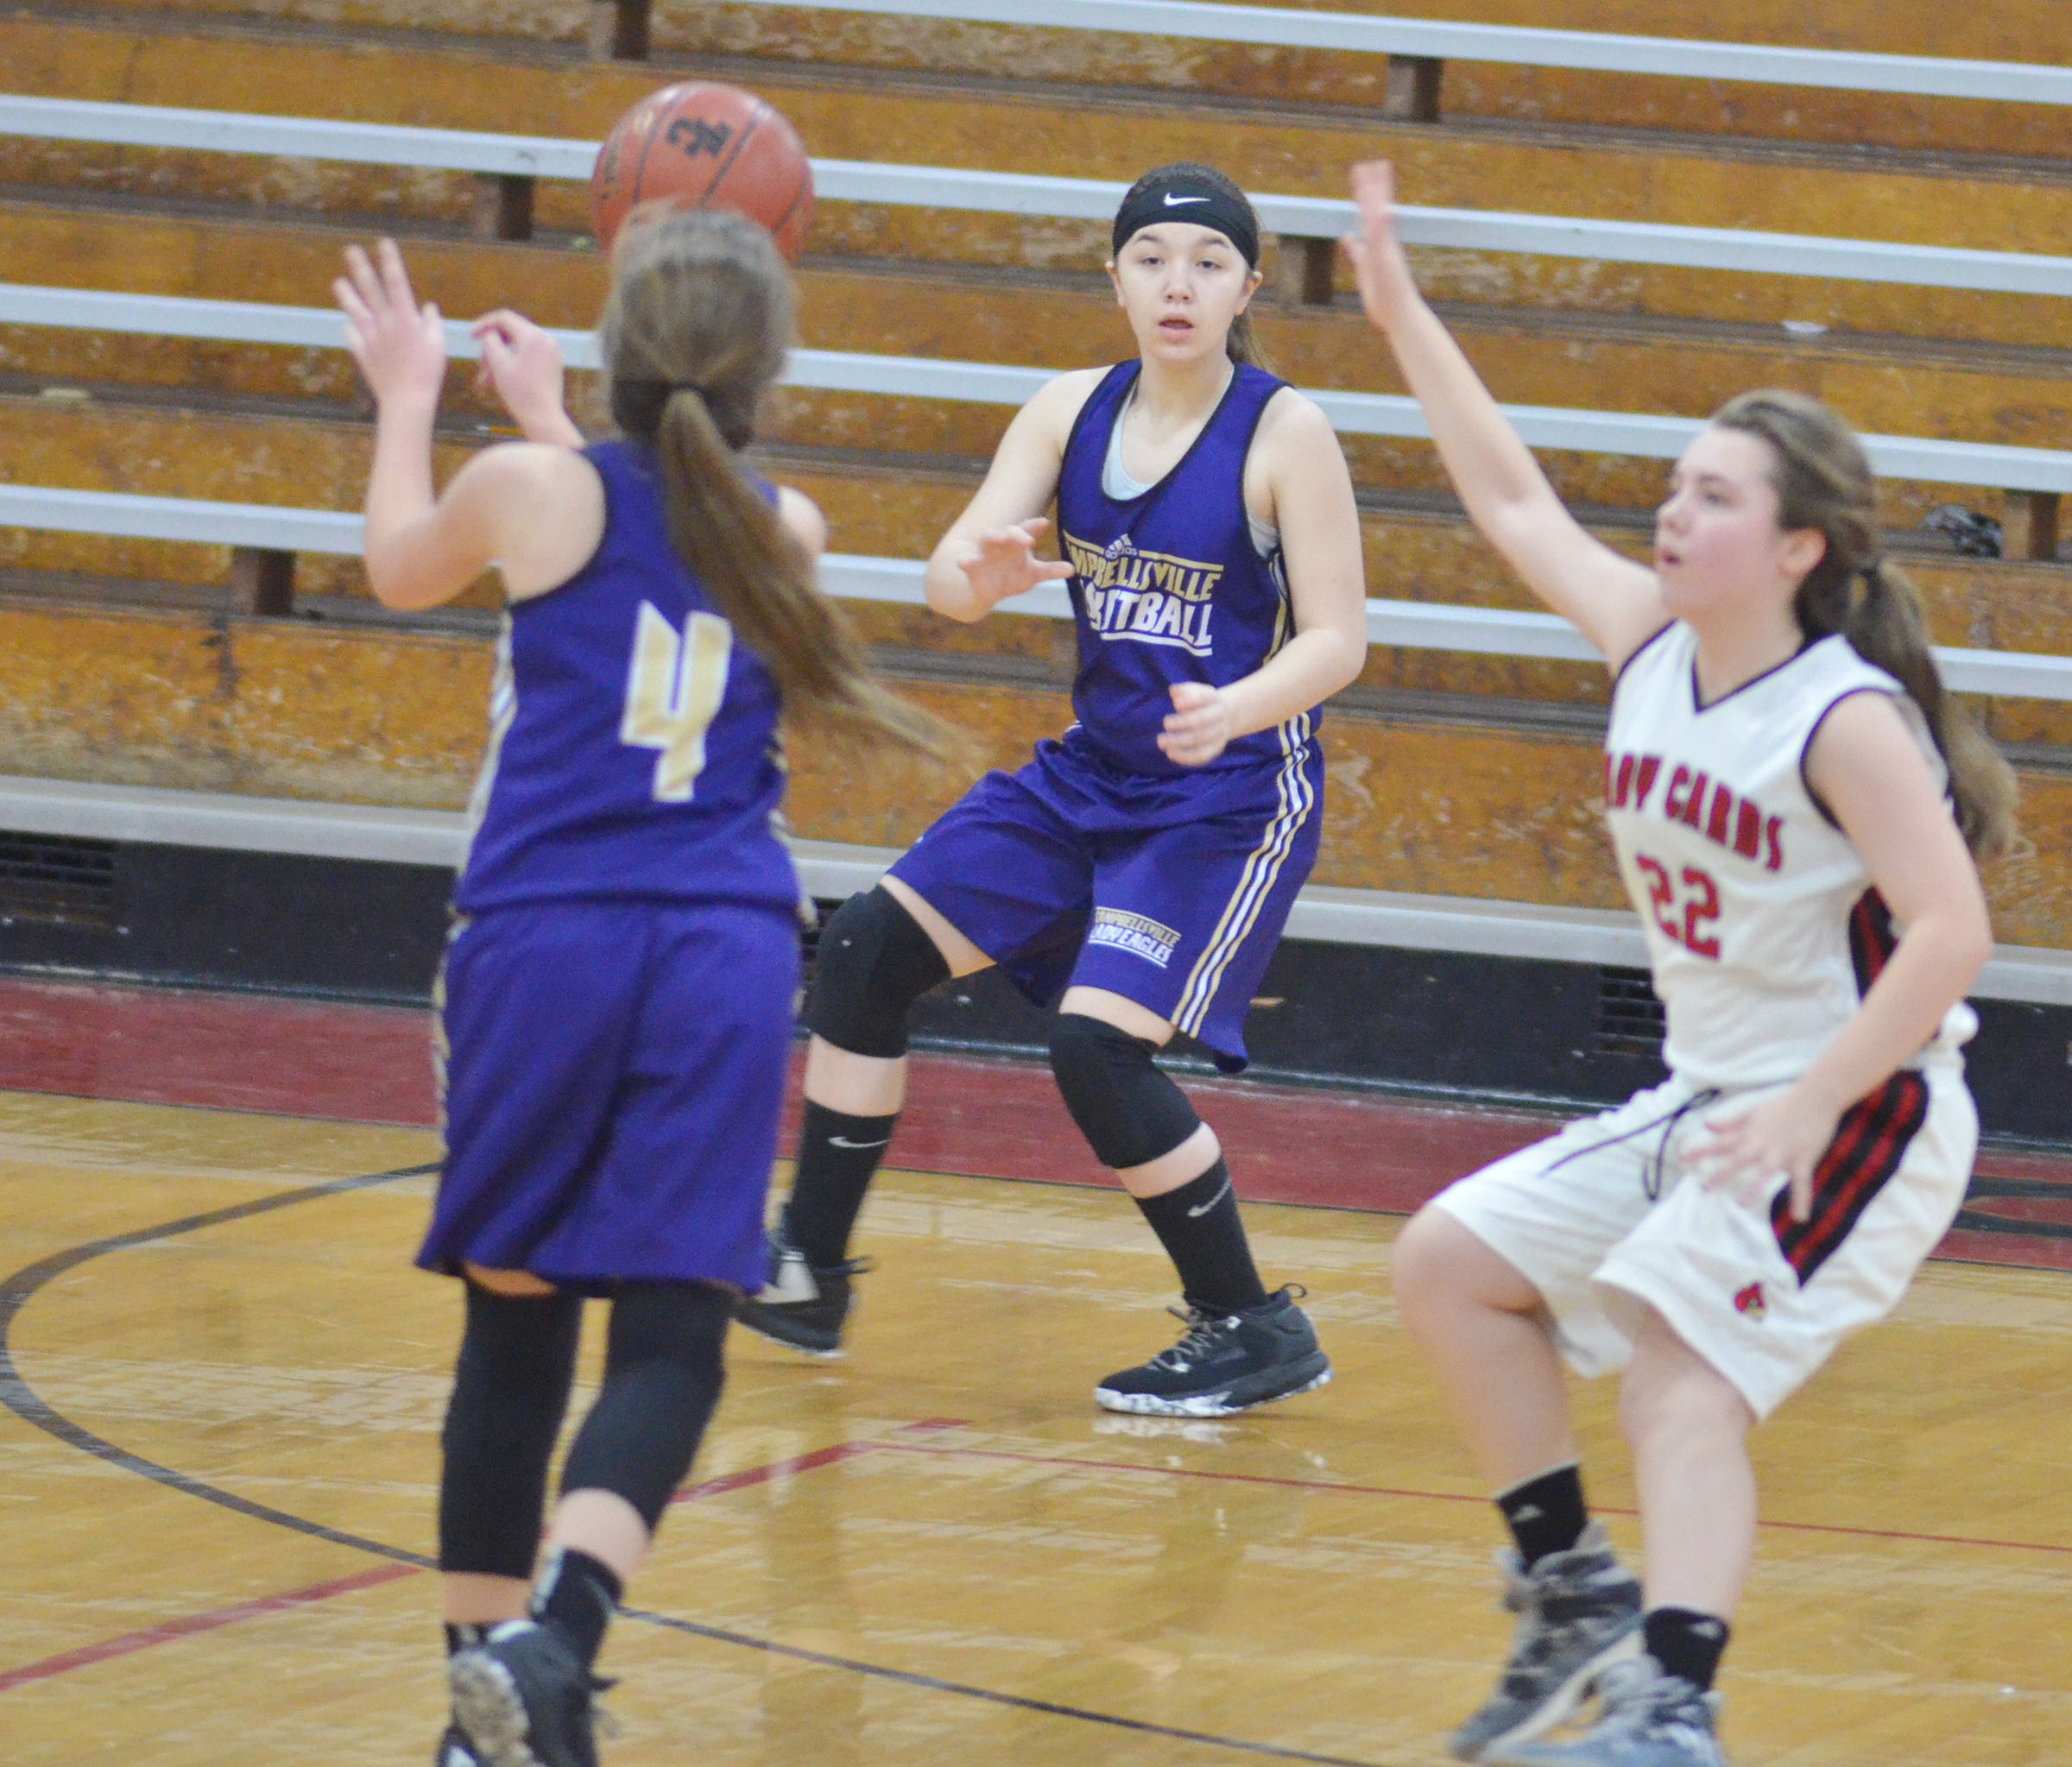 Campbellsville Middle School seventh-grader Olivia Fields catches the ball from teammate Lainey Watson, also a seventh-grader.